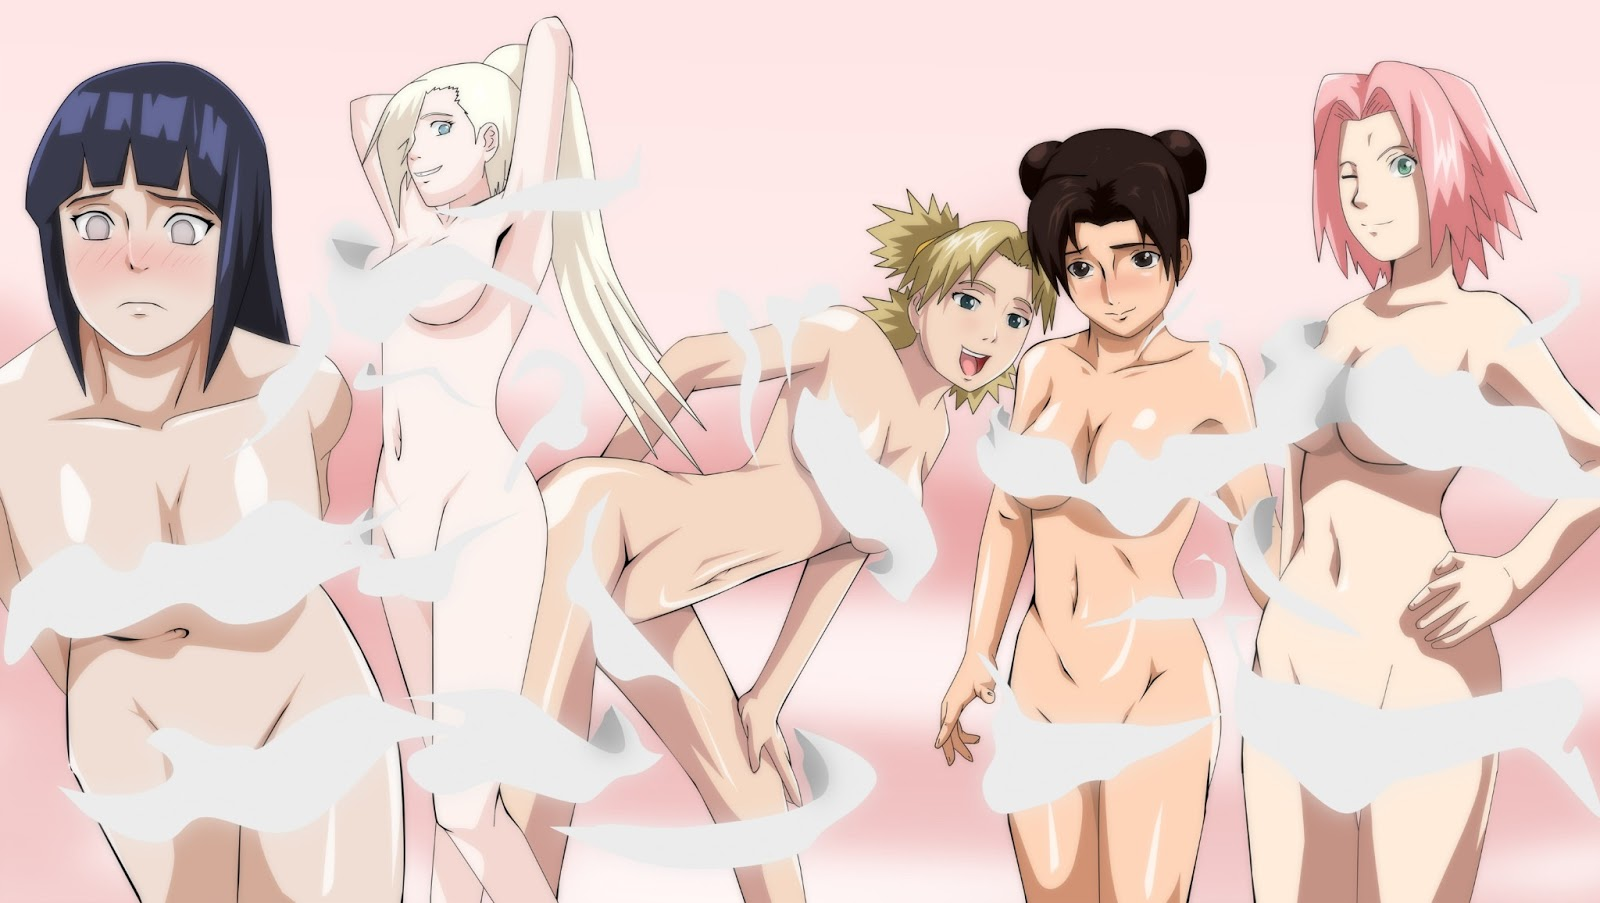 Was specially Sakura sexy naruto girls remarkable